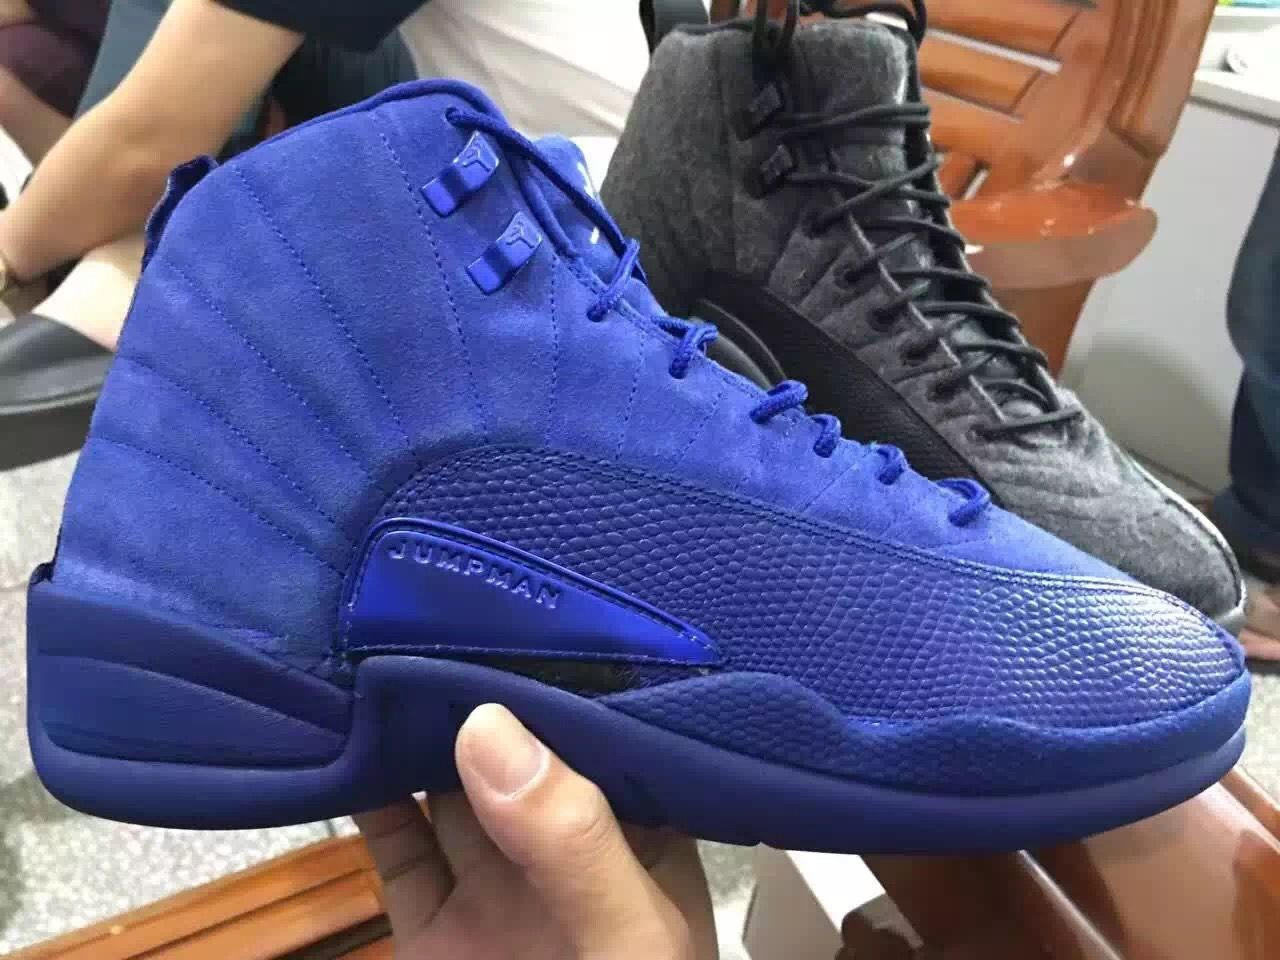 4dc068c421a9f9 More Images Of The Premium Air Jordan 12 Deep Royal Blue